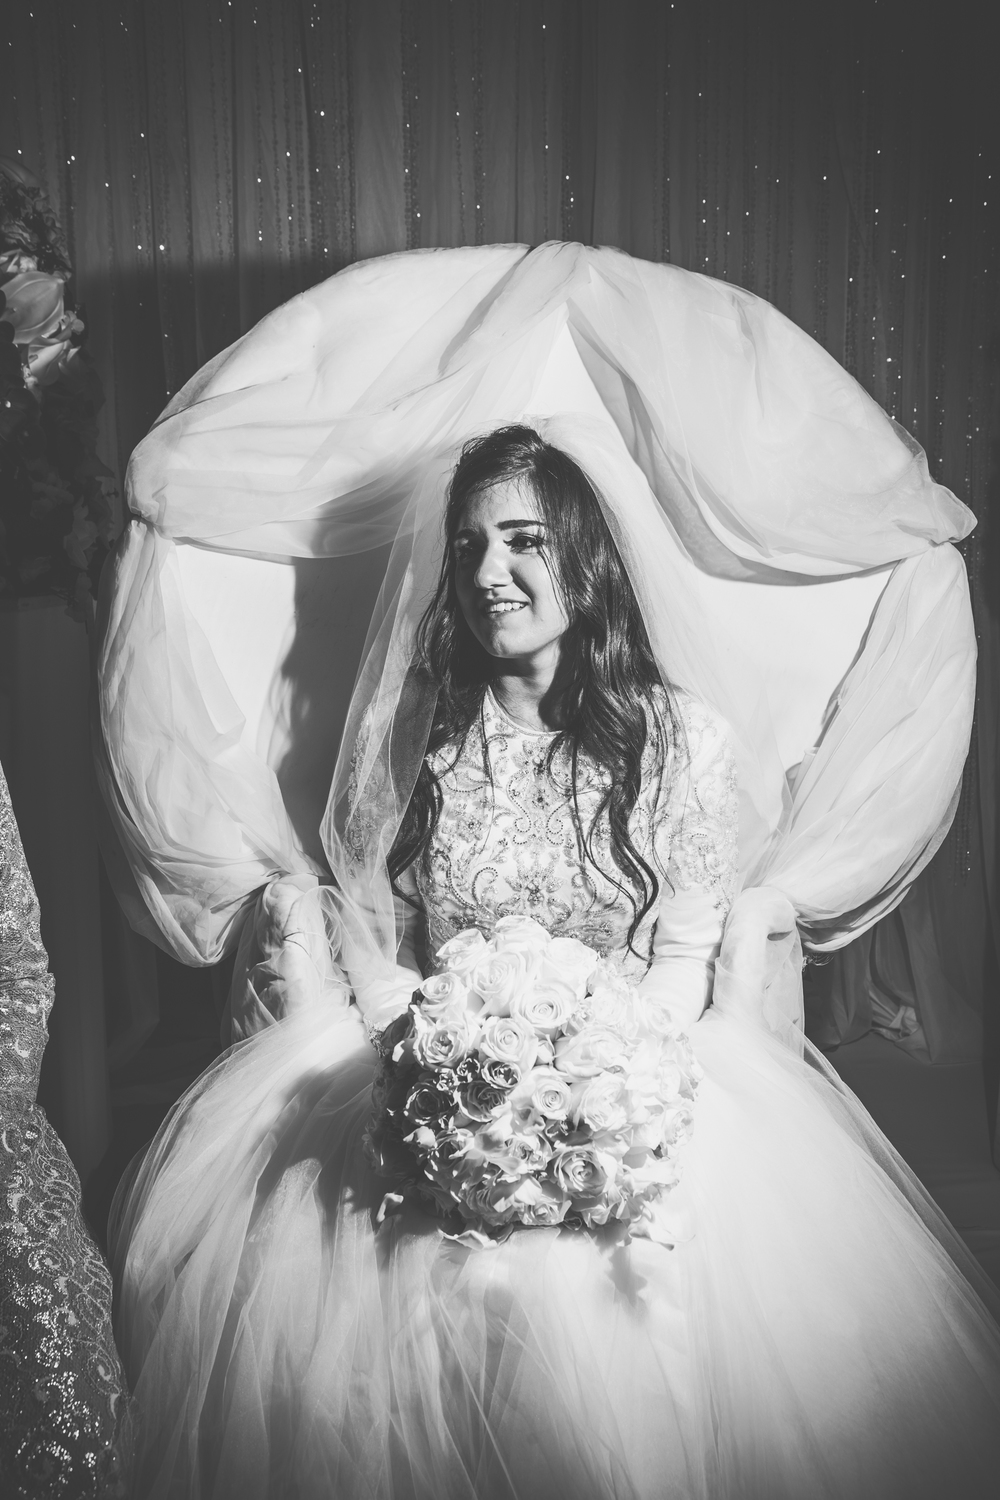 Wedding Iossi and Gitty Khafif  - Eliau Piha studio photography, new york, events, people 770 brooklyn -0303.jpg